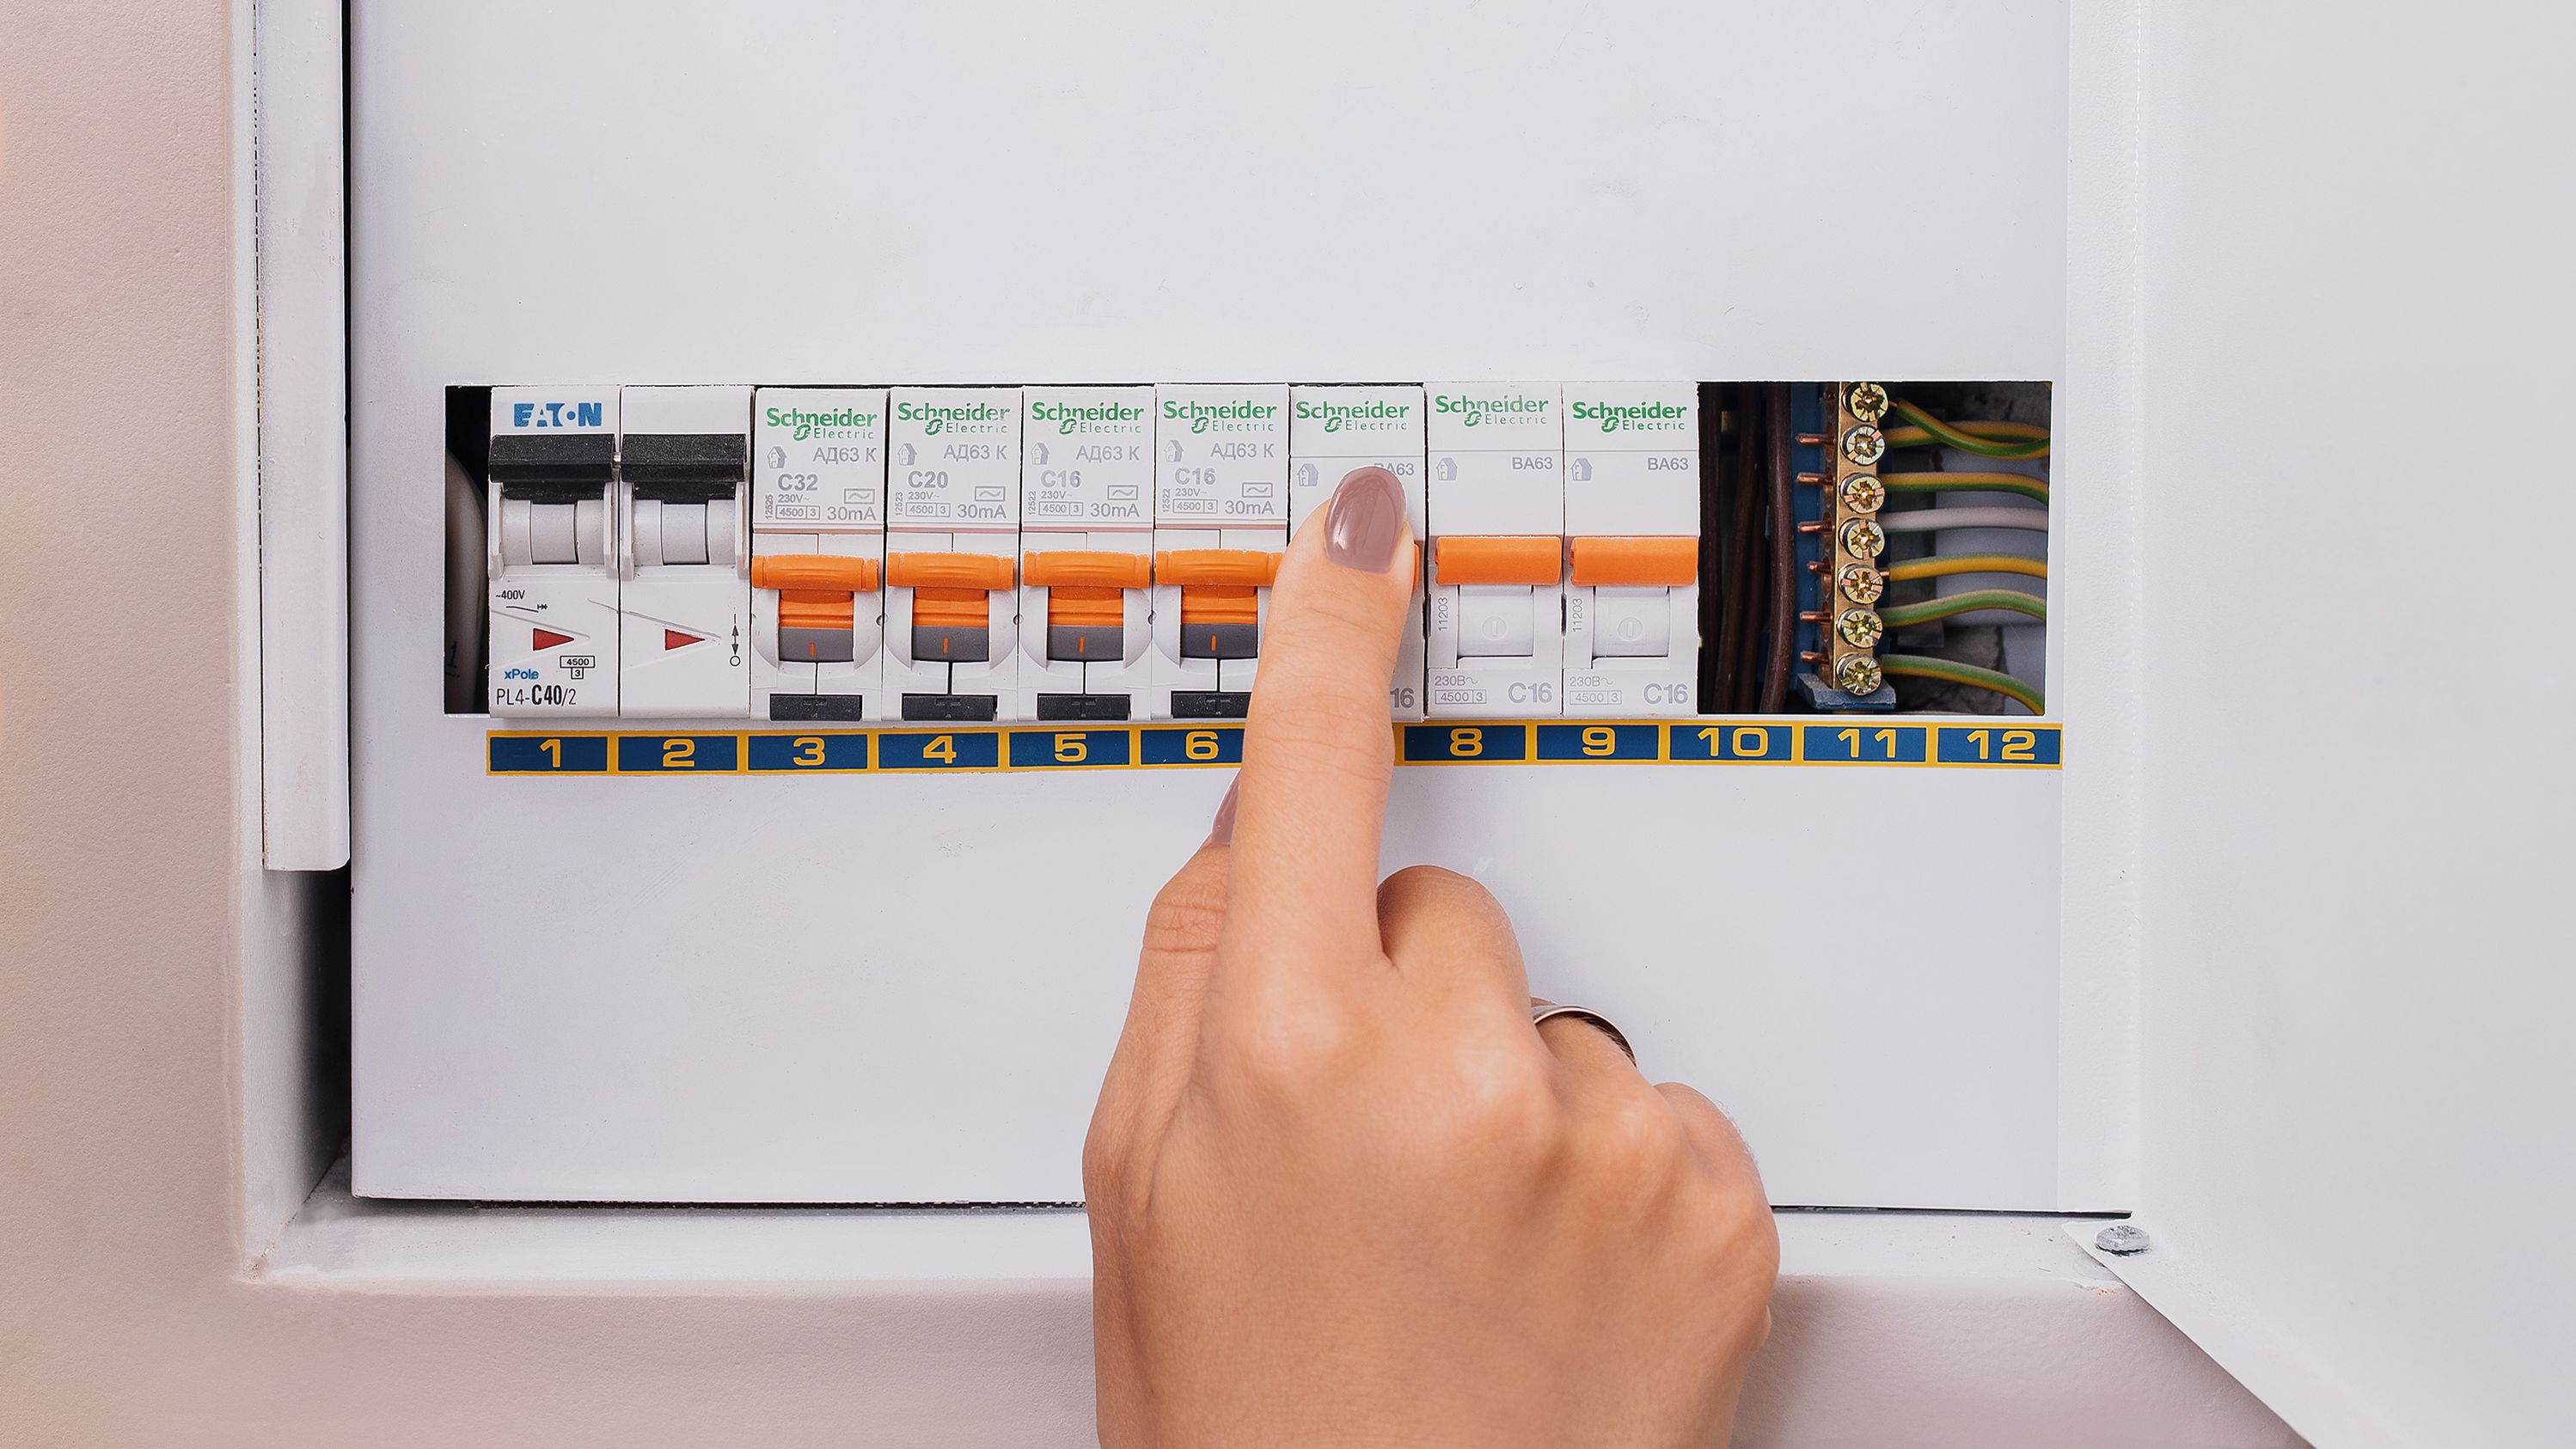 [ZHKZ_3066]  What Happens When a Fuse Blows | Security Fuse Breaker Box |  | The Spruce